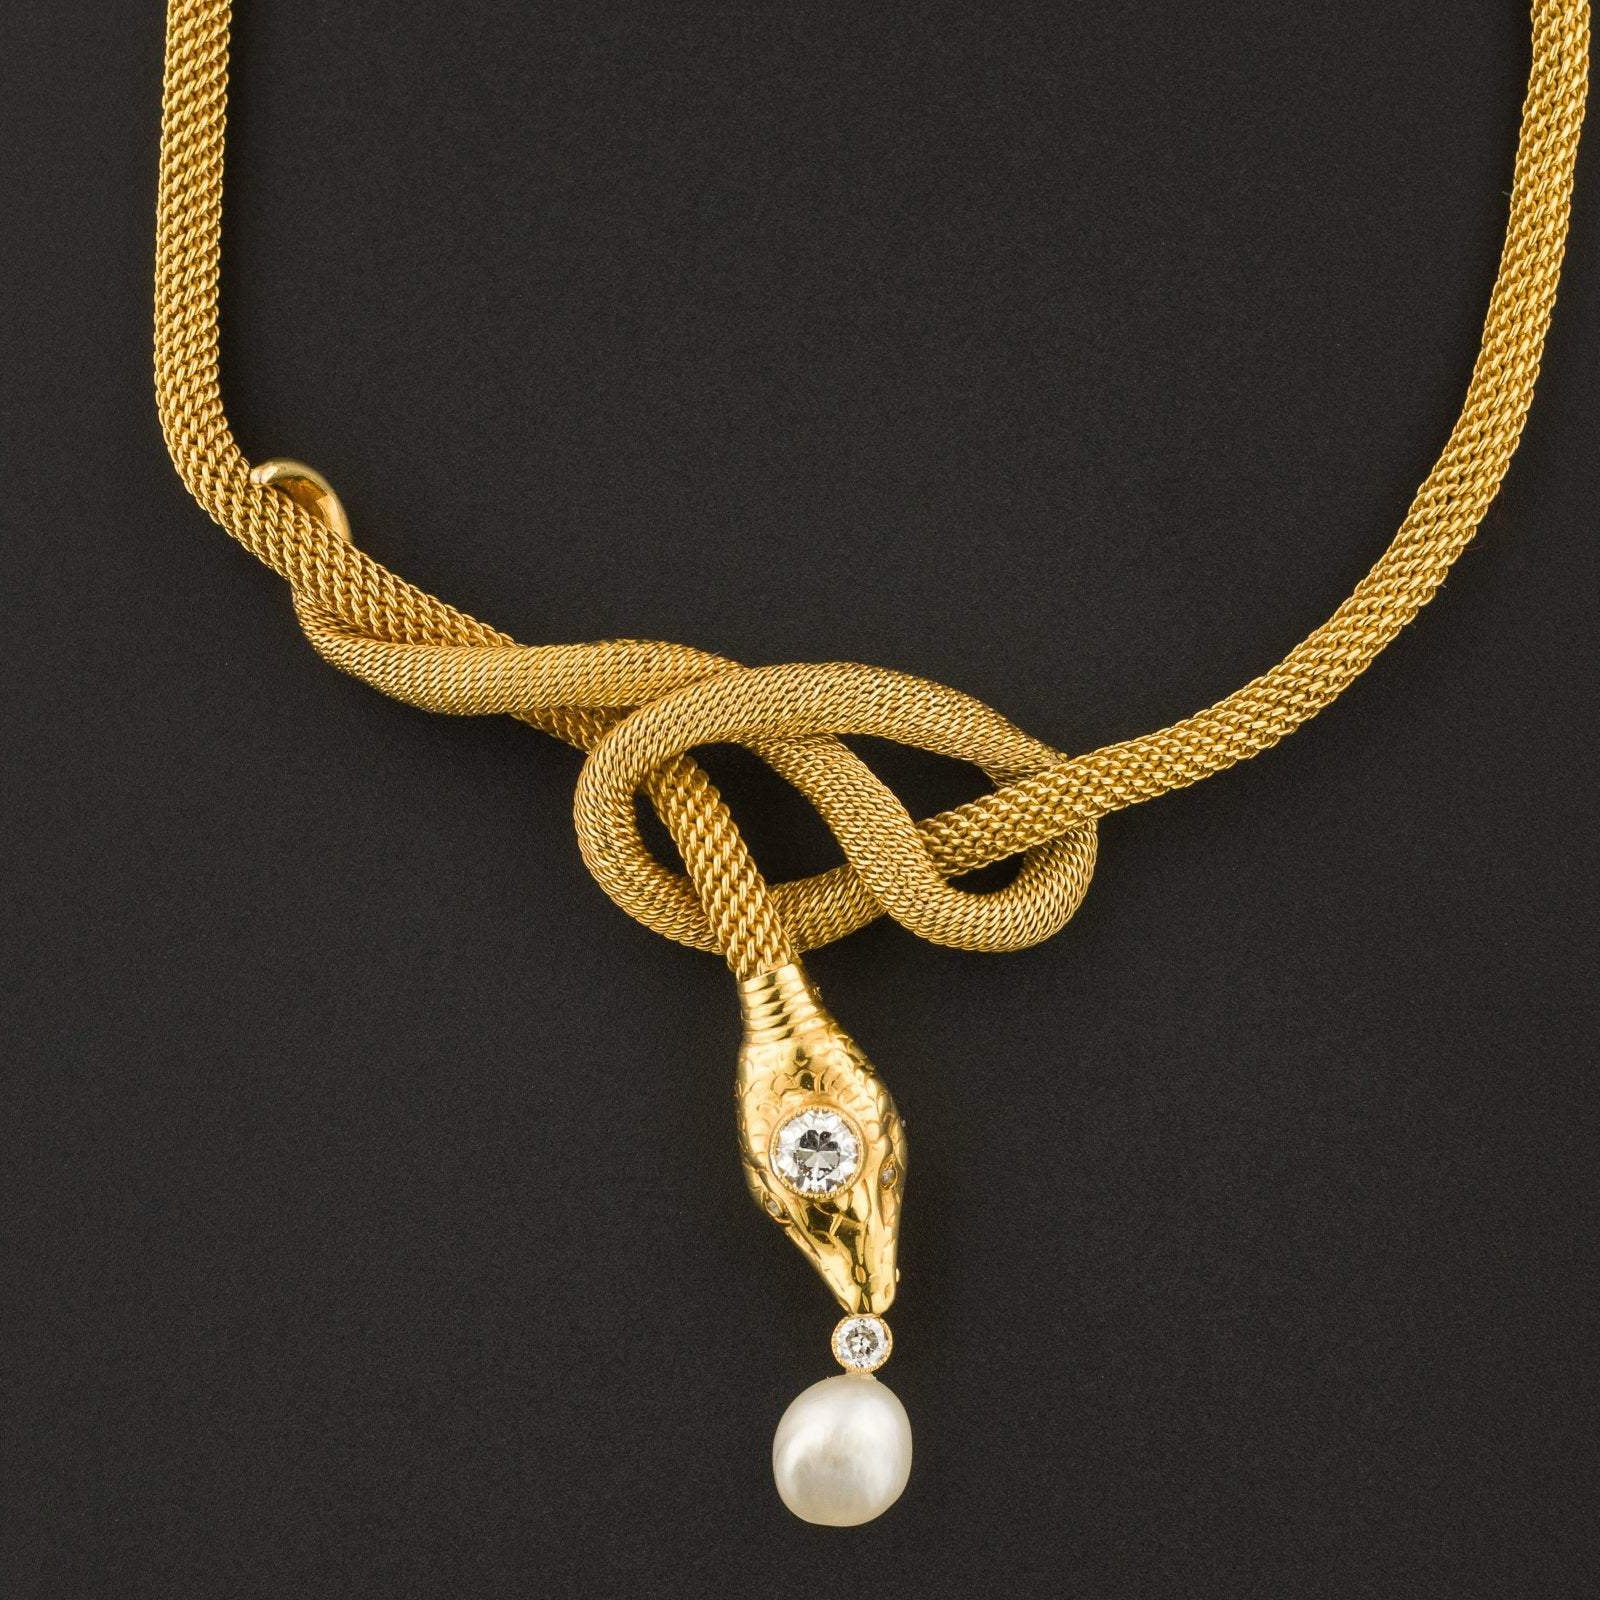 Vintage Snake Necklace | Diamond & Pearl Snake Necklace-Trademark Antiques